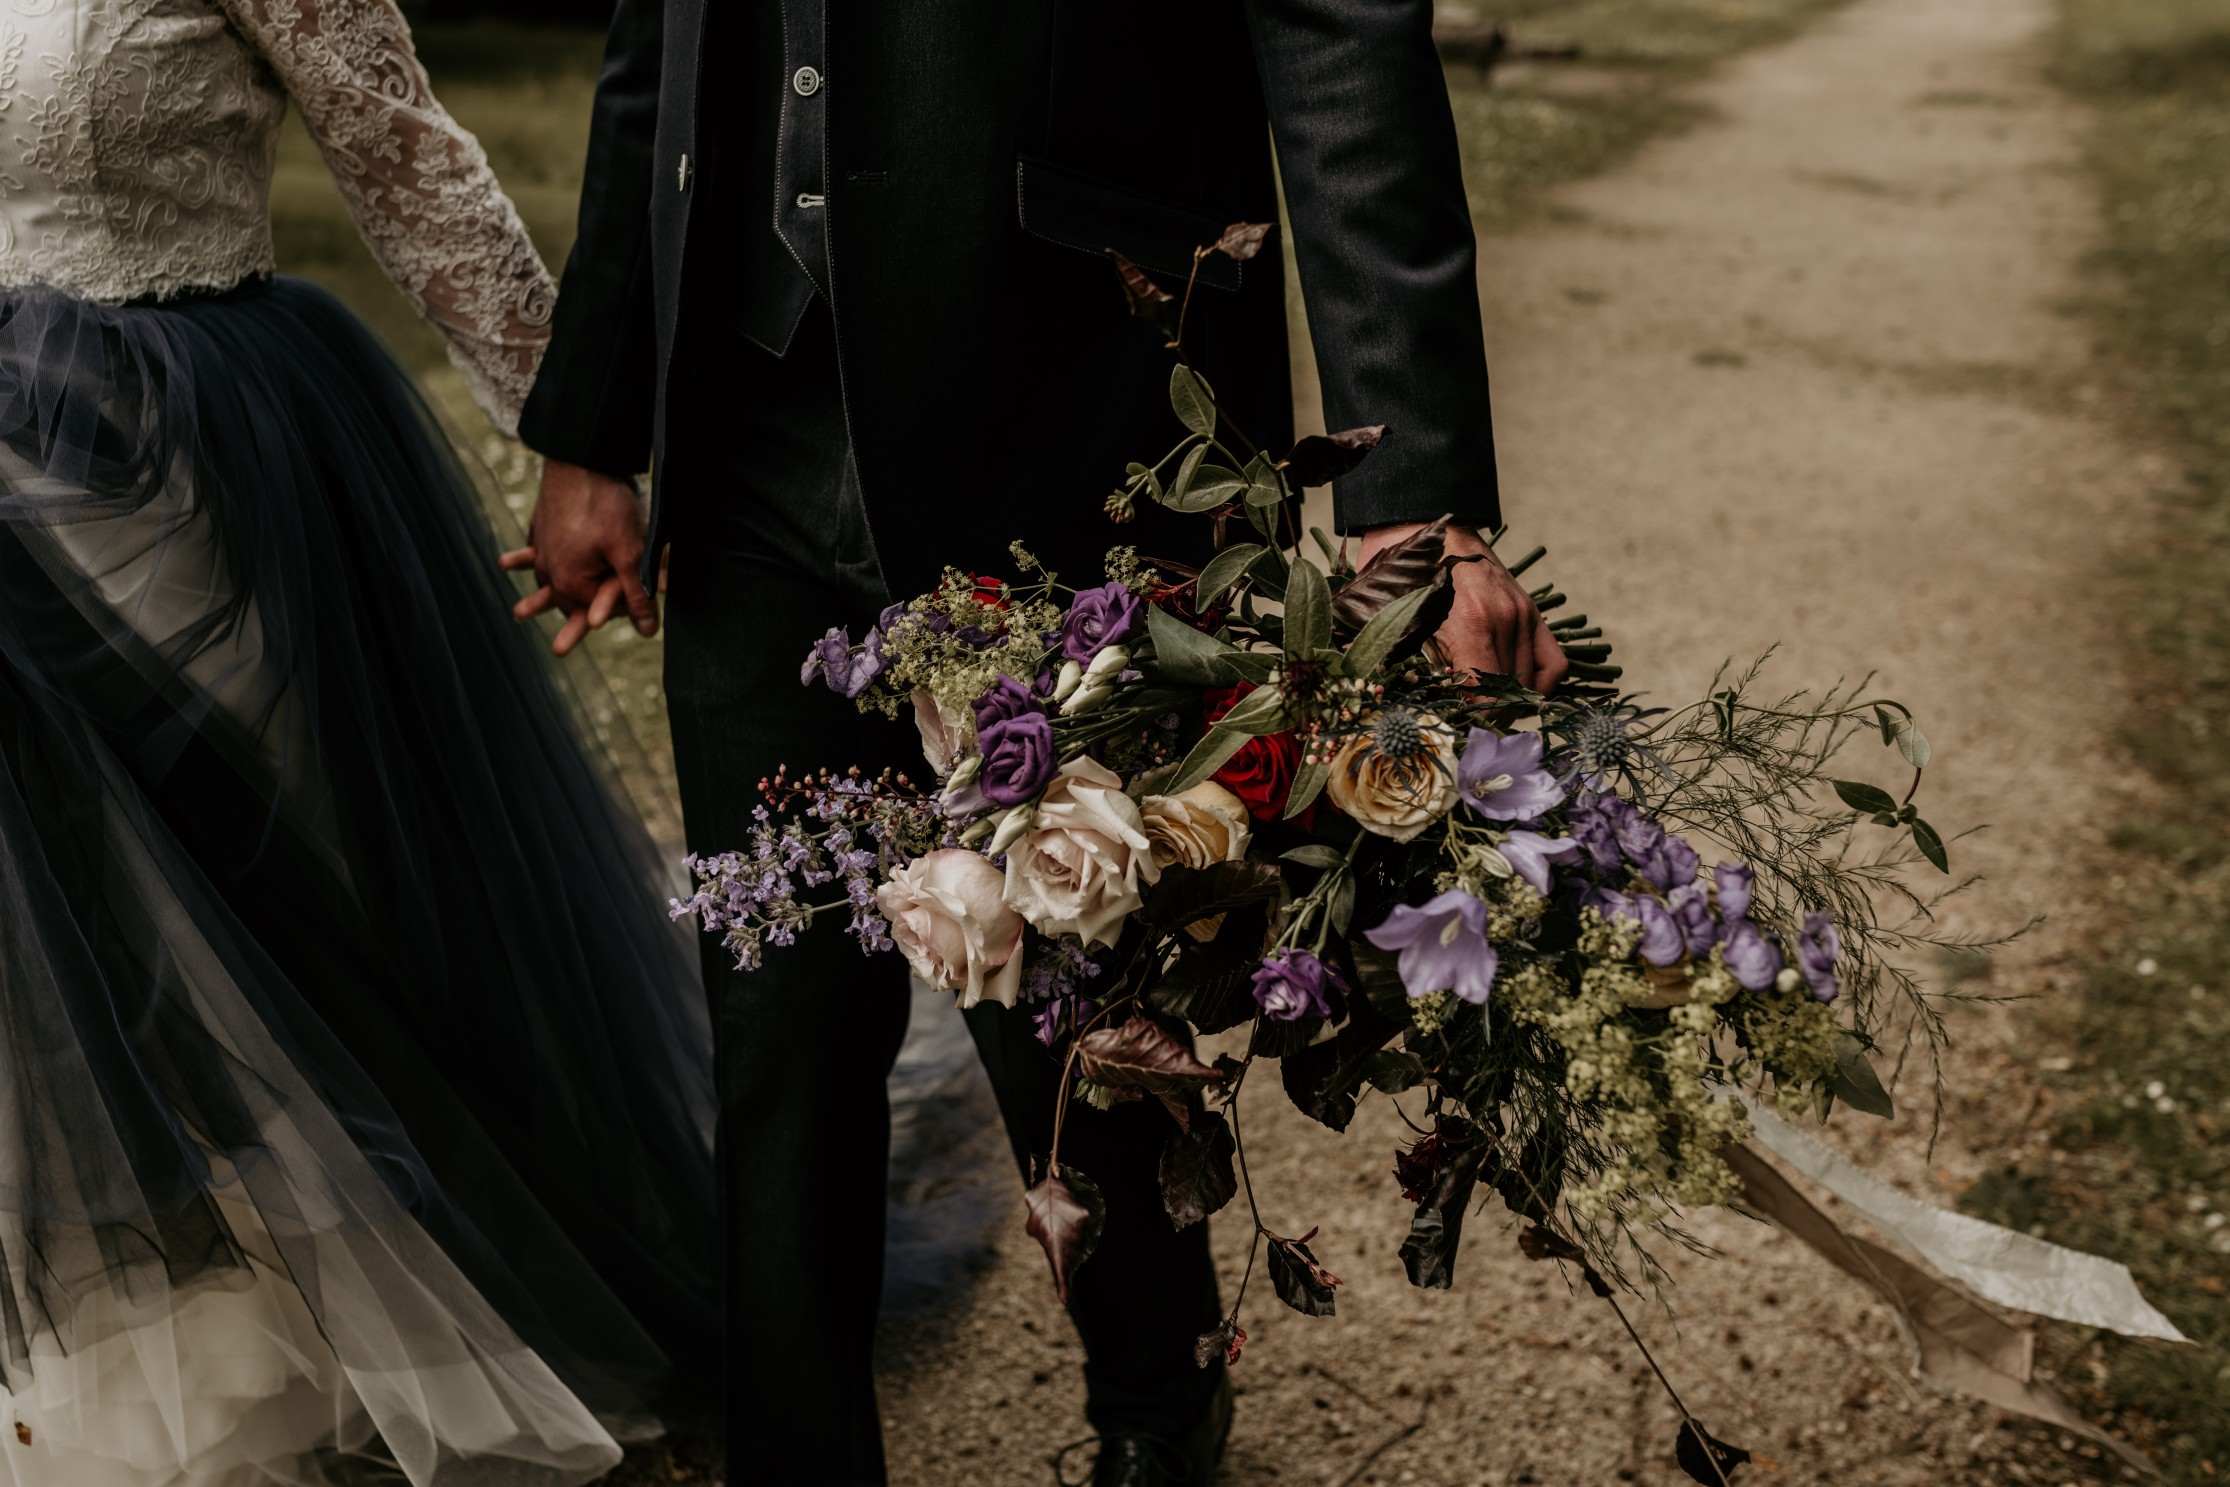 unique wedding flowers - purple and red wedding flowers - bohemian wedding flowers - unconventional wedding